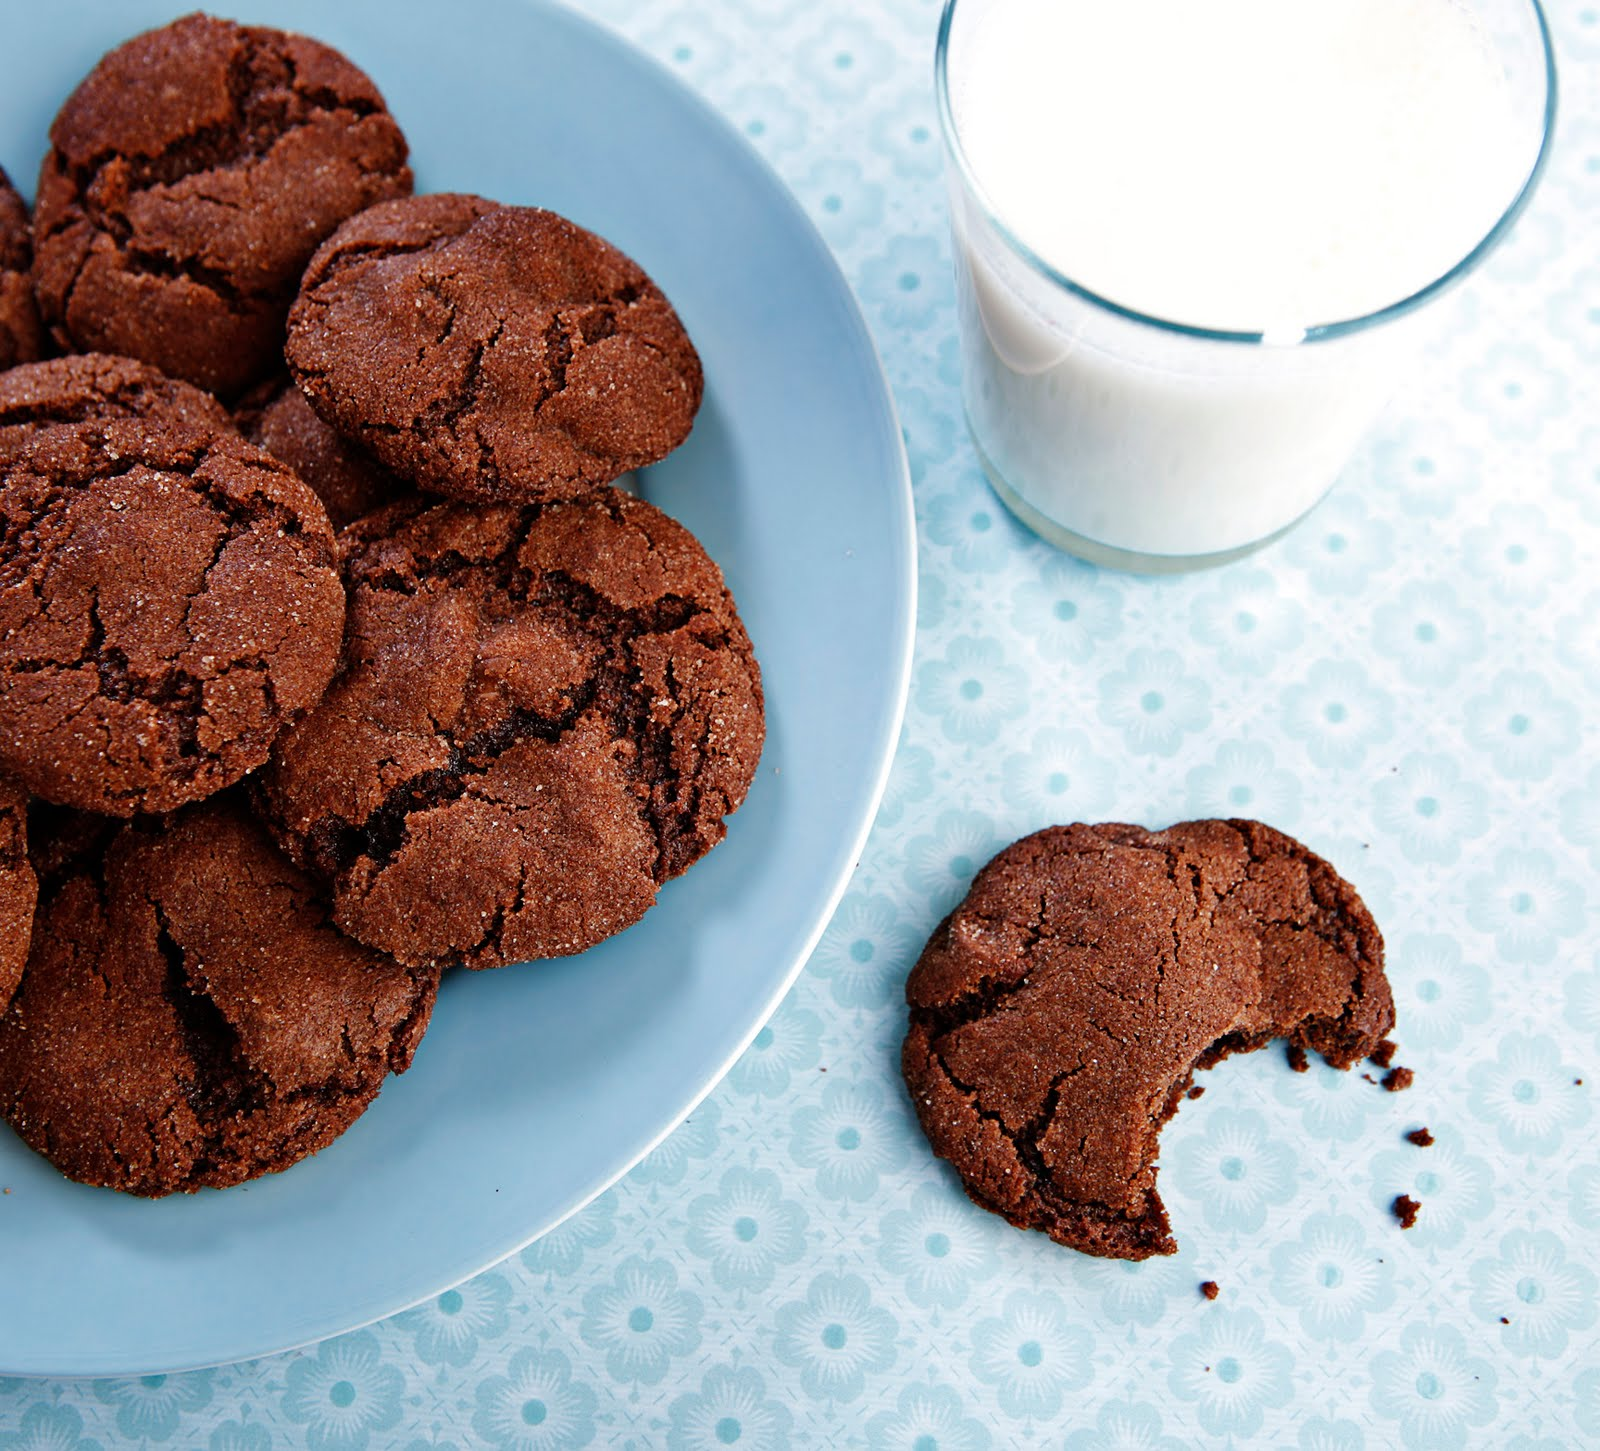 Confessions of a Bake-aholic: Mexican Hot-Chocolate Cookies